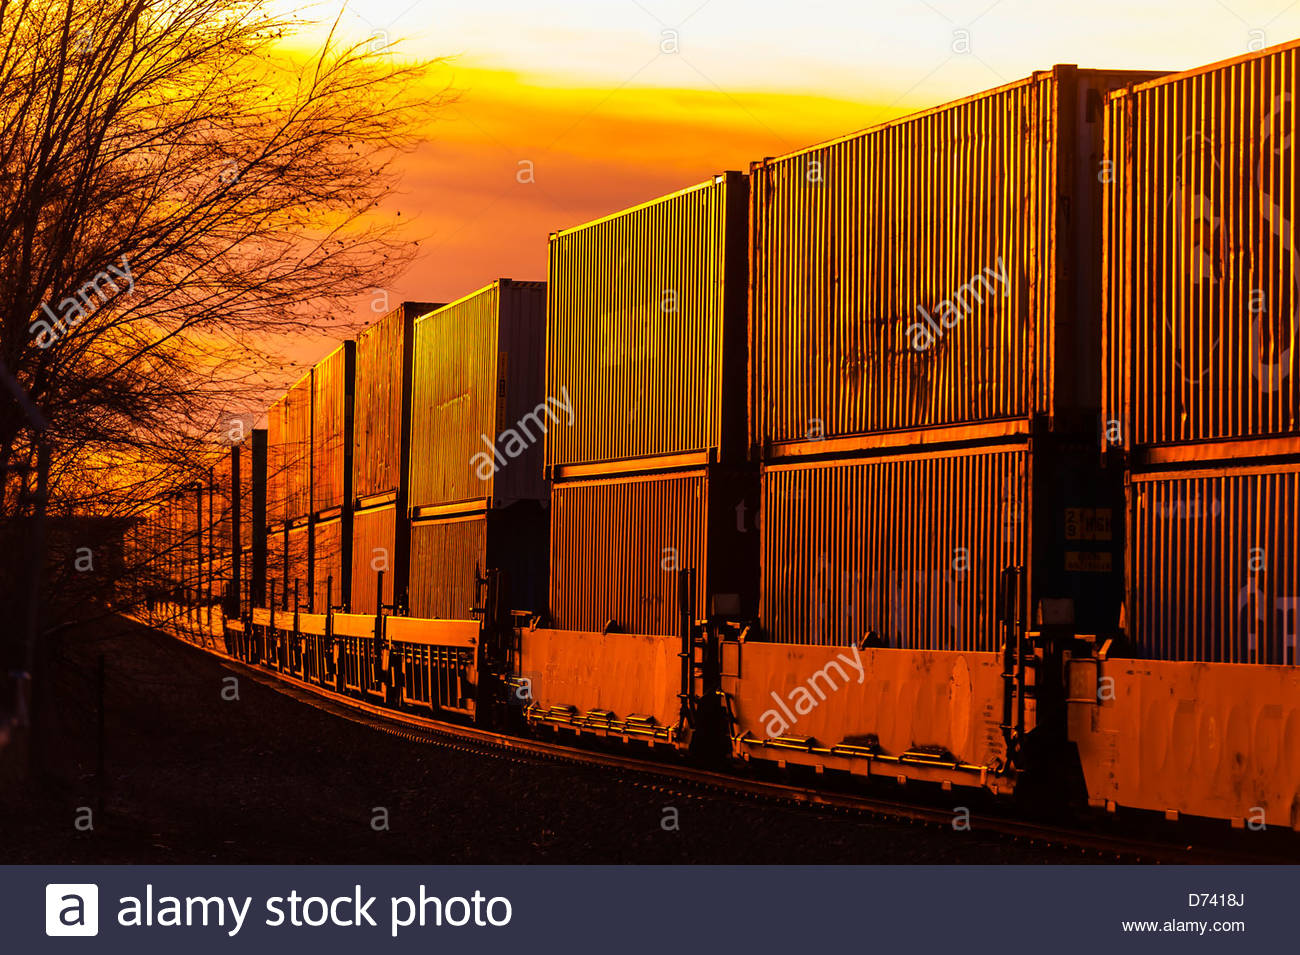 A freight train carrying contrainers, near Gallup, New Mexico USA. - Stock Image